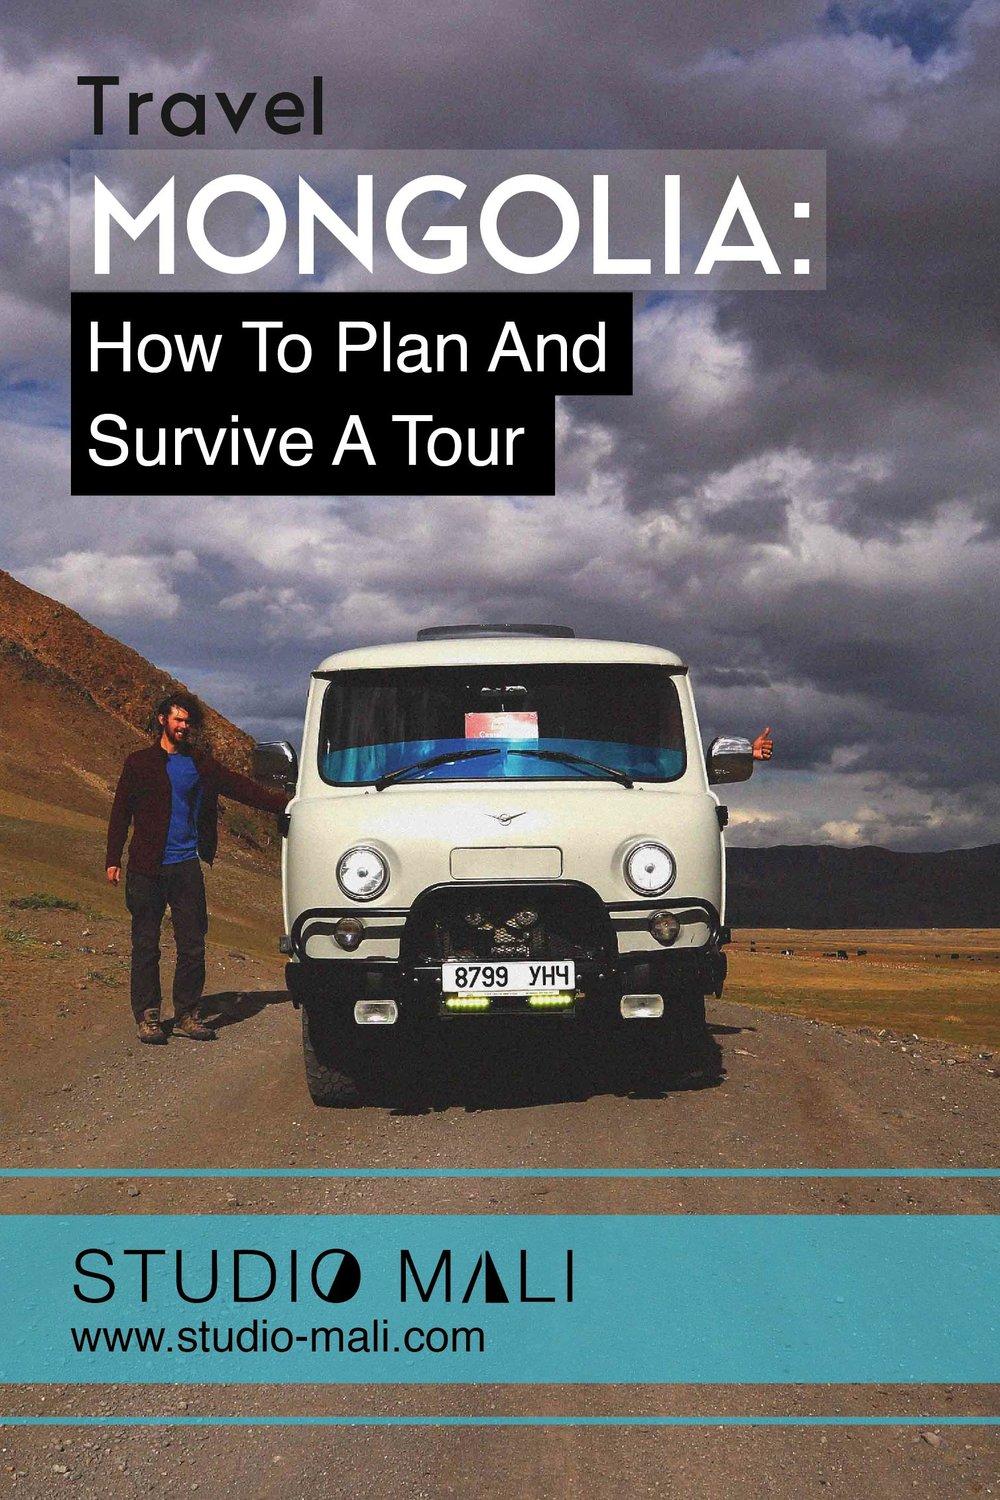 How To Plan and Survive A Mongolian Tour, By Studio Mali